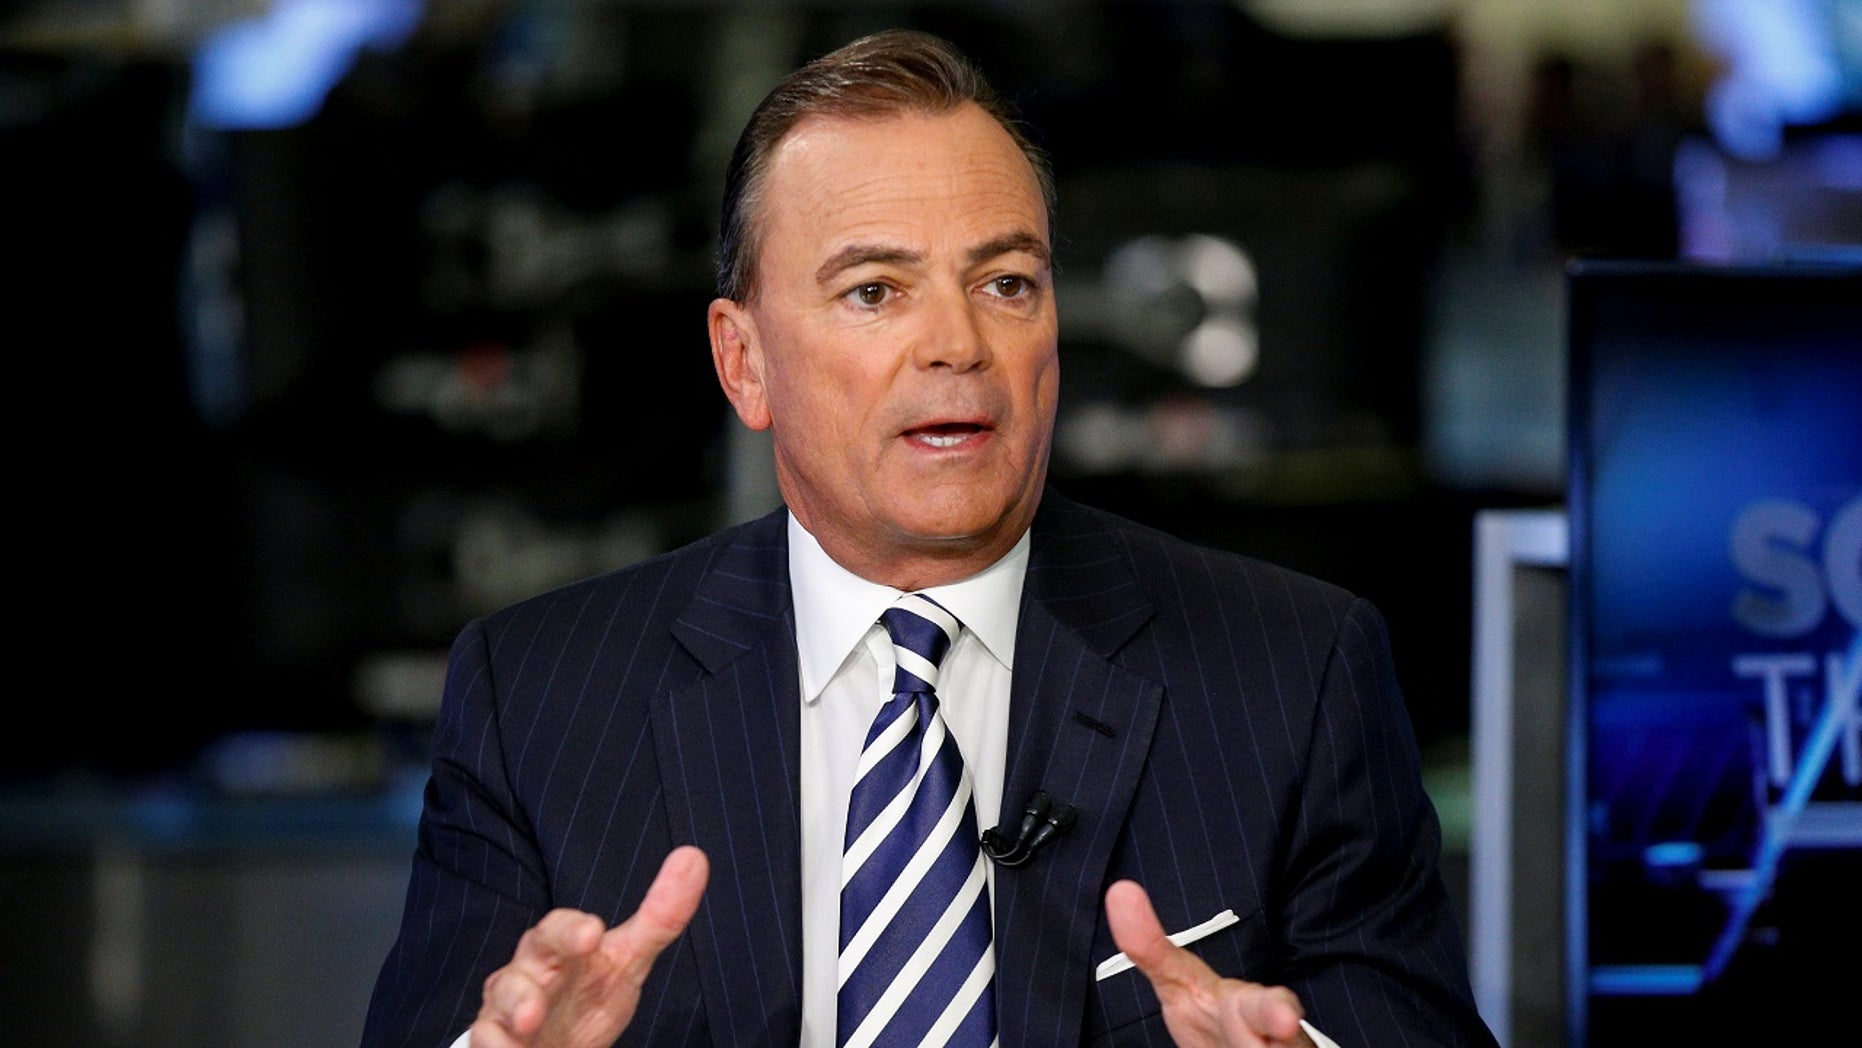 Rick Caruso, CEO of Caruso Affiliated, speaks during an interview at the New York Stock Exchange, (NYSE) in New York, U.S., Dec. 1, 2017.